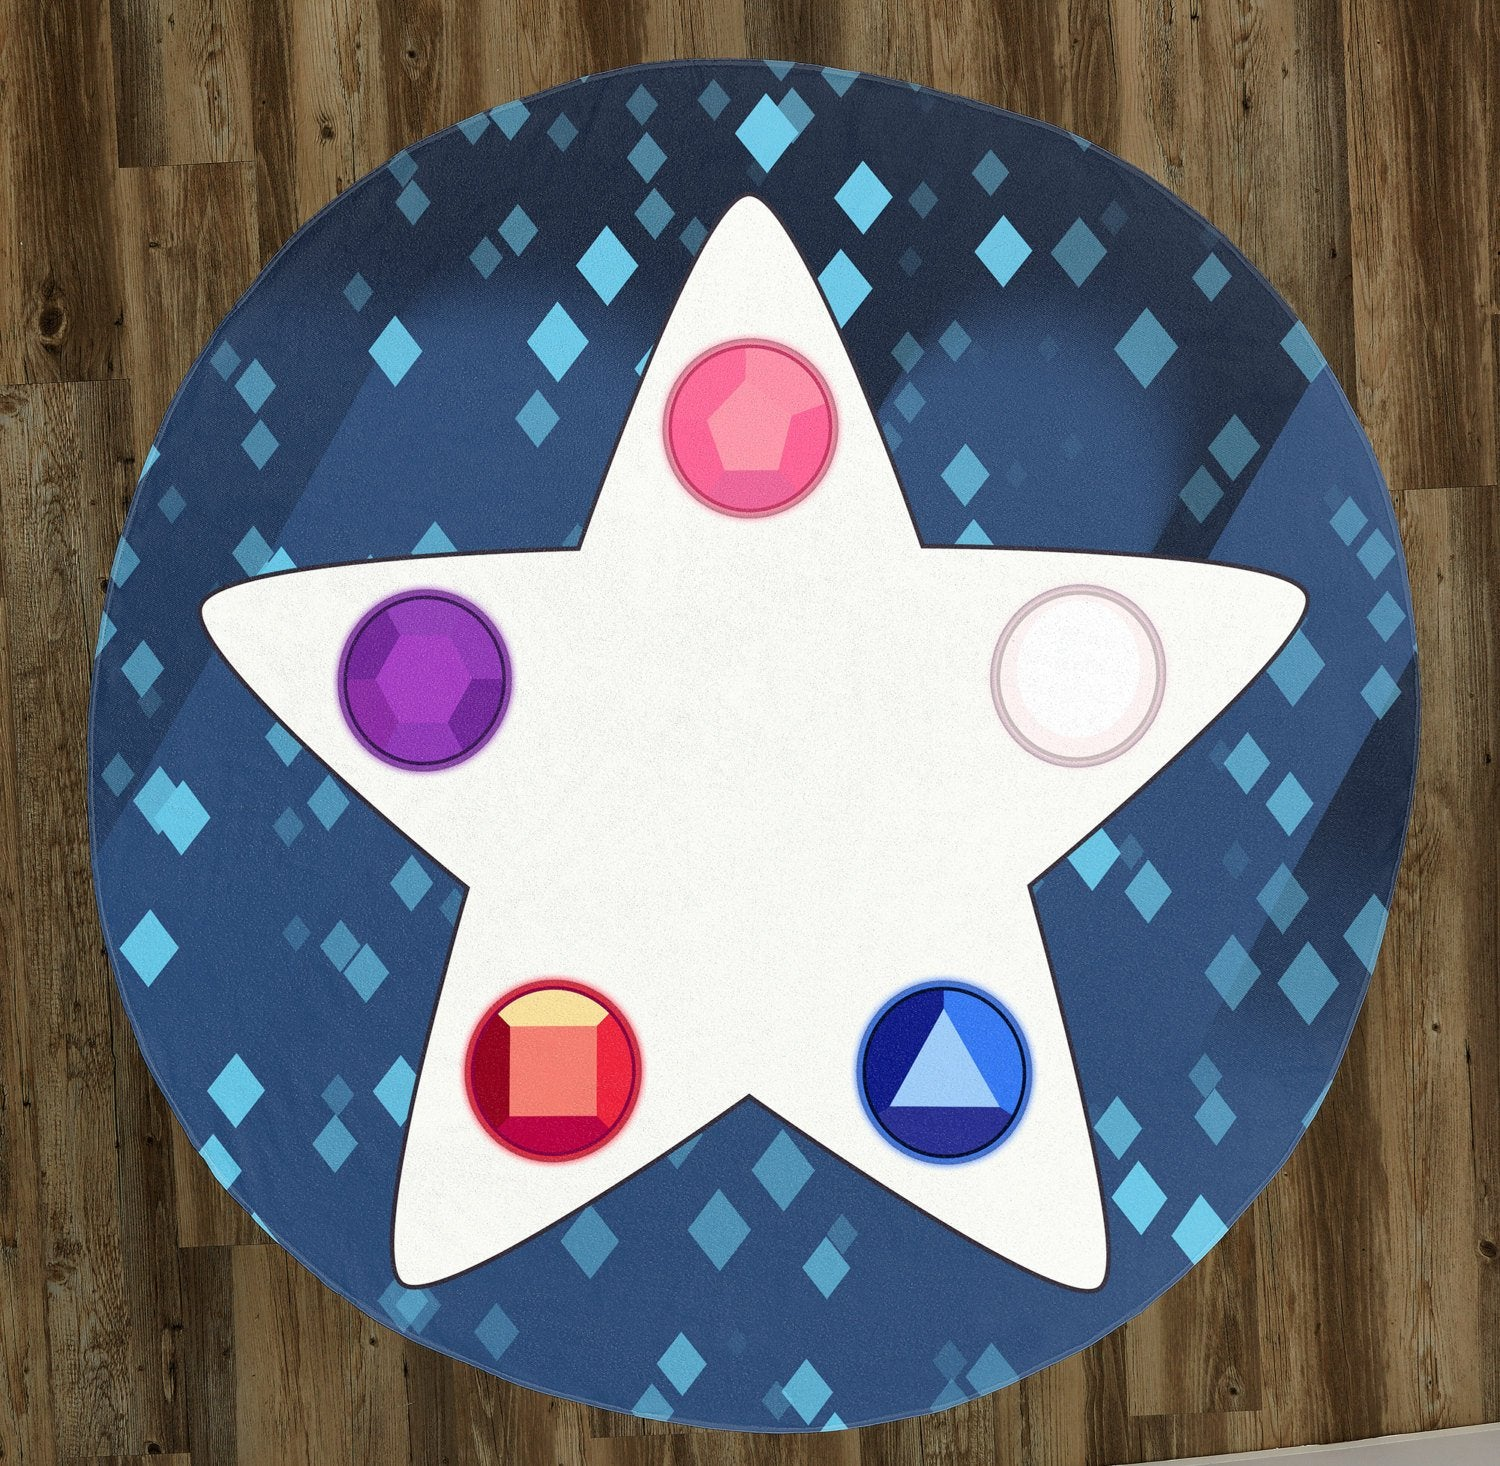 "Crystal Gem Star 60"" Round Microfiber Beach Towel"